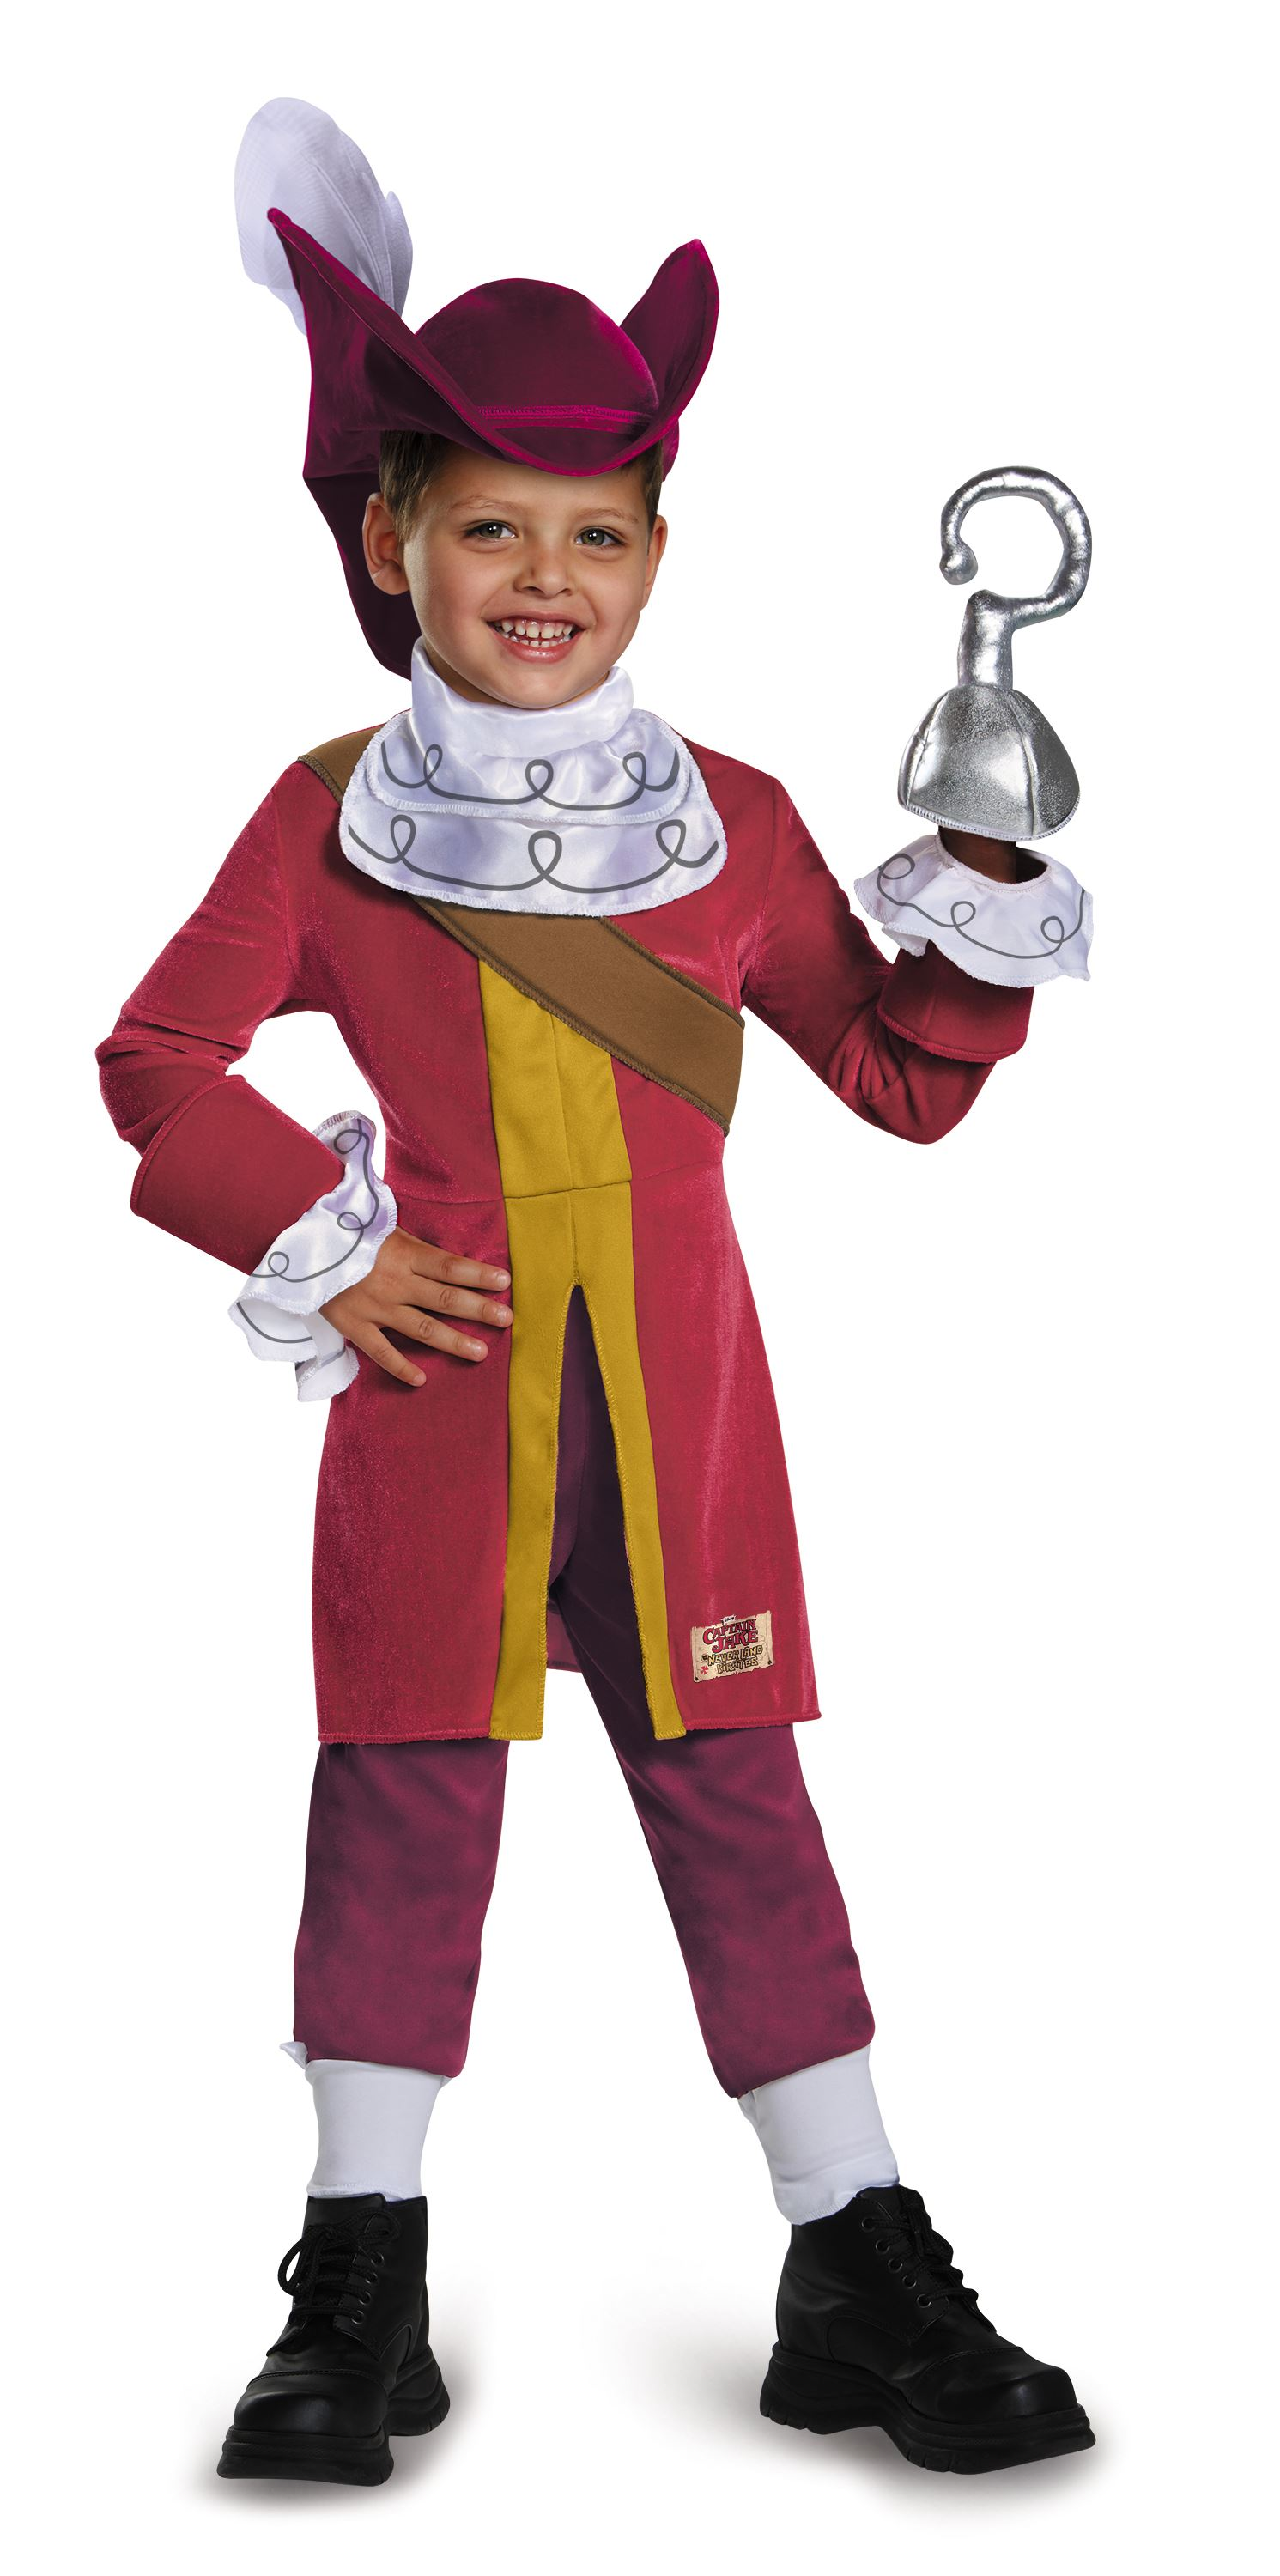 Kids Captain Hook Boys Costume  sc 1 st  The Costume Land & Kids Captain Hook Boys Costume | $38.99 | The Costume Land